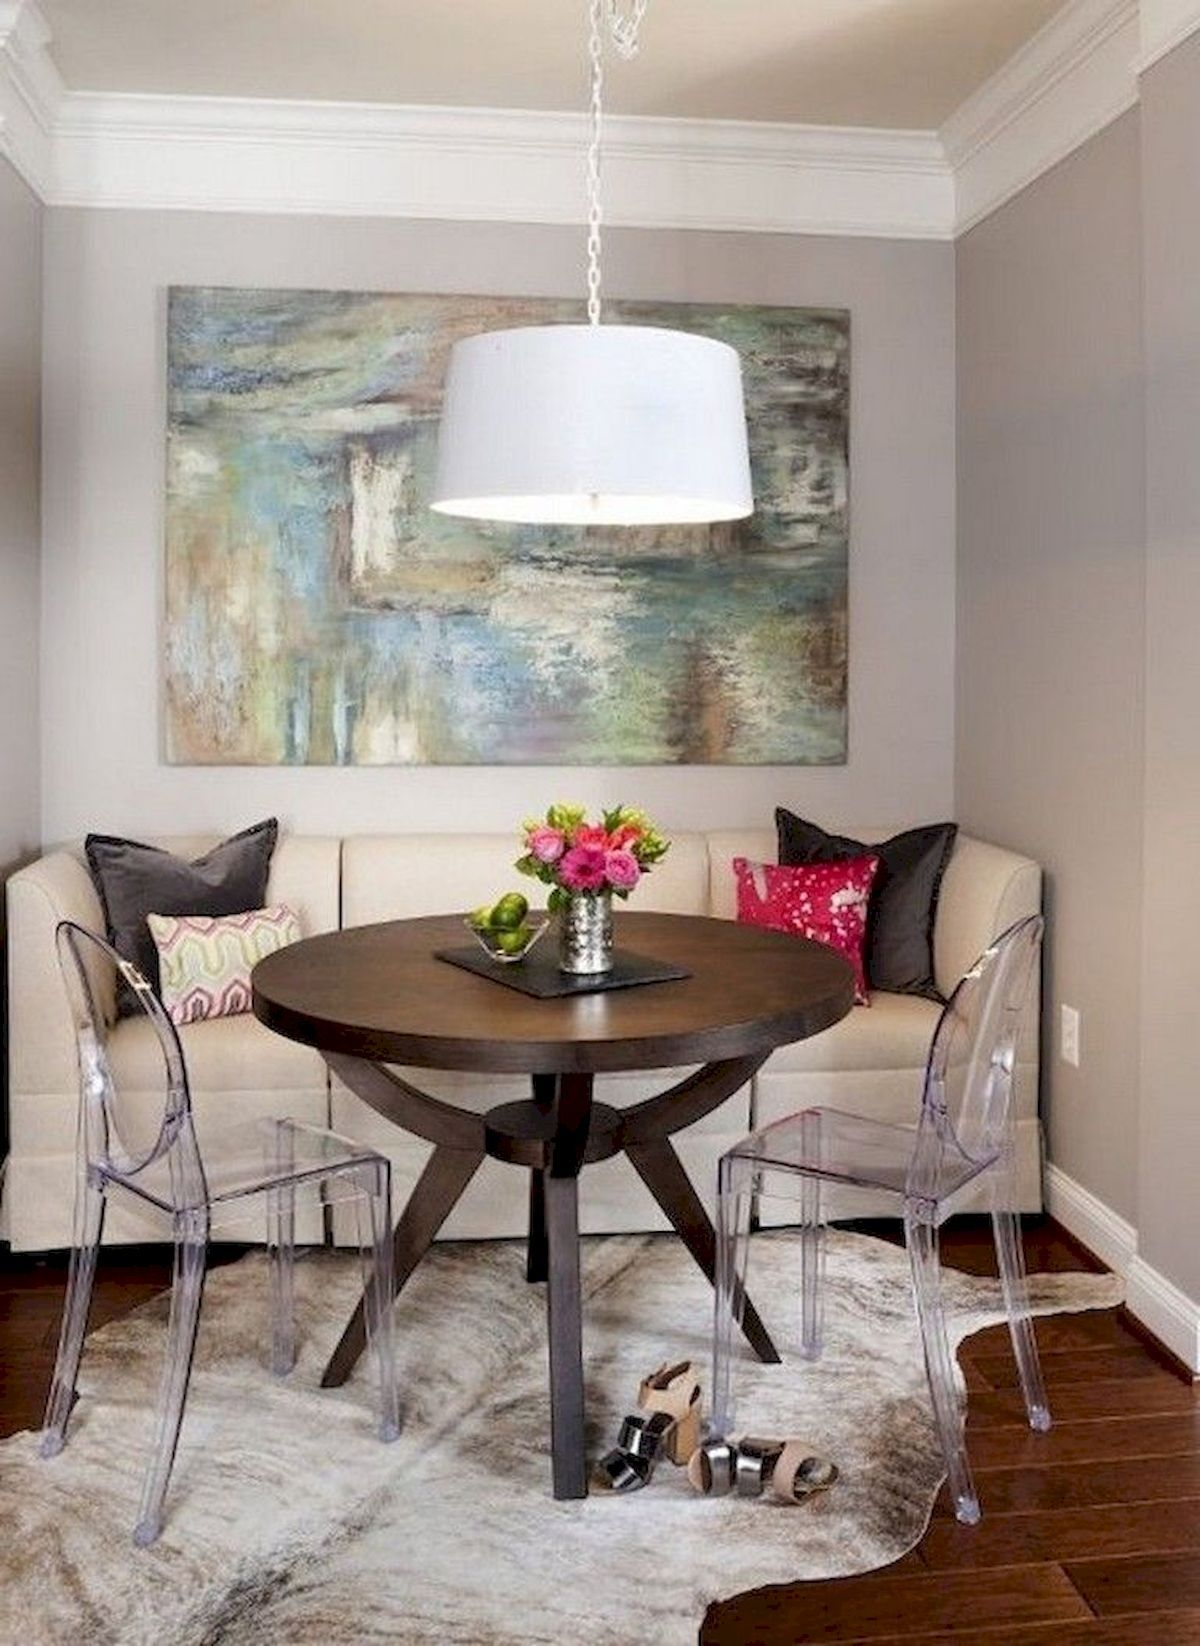 Stylish 52 Beautiful Small Dining Room Ideas On A Budget If You Are Living In A Small A Dining Room Small Dining Room Interiors Space Saving Dining Room